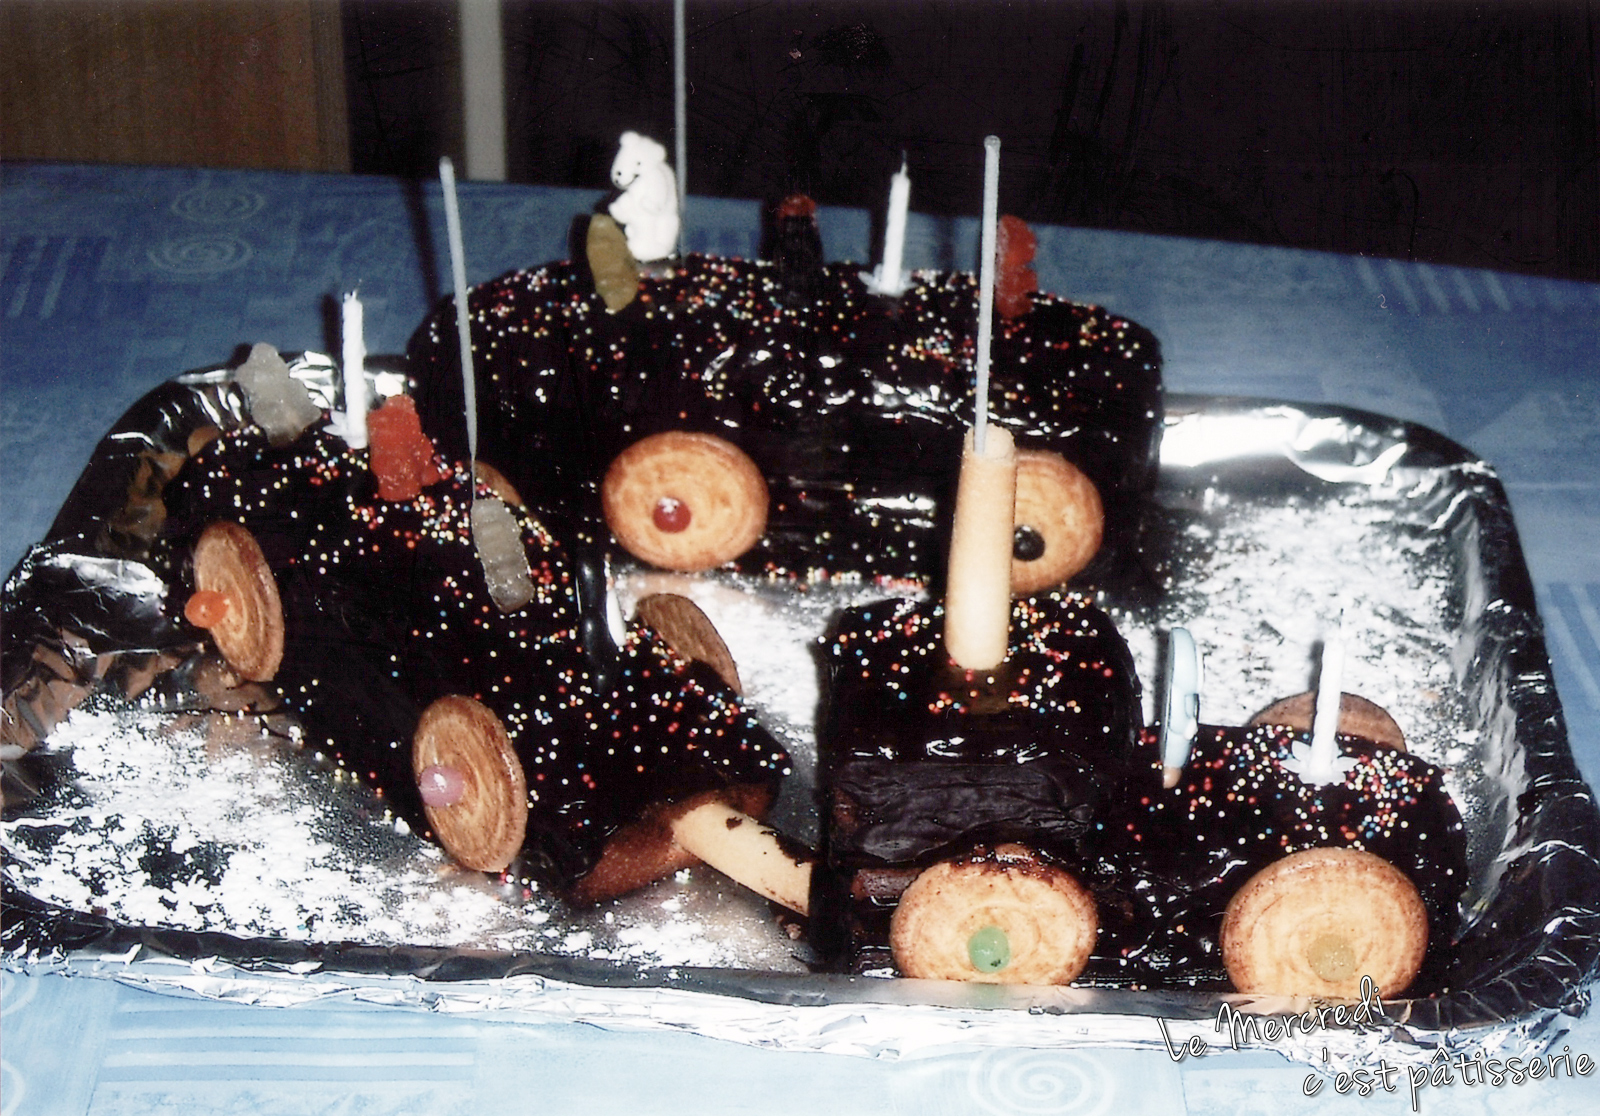 https://le-mercredi-c-est-patisserie.blogspot.com/2011/09/le-petit-train-2005.html